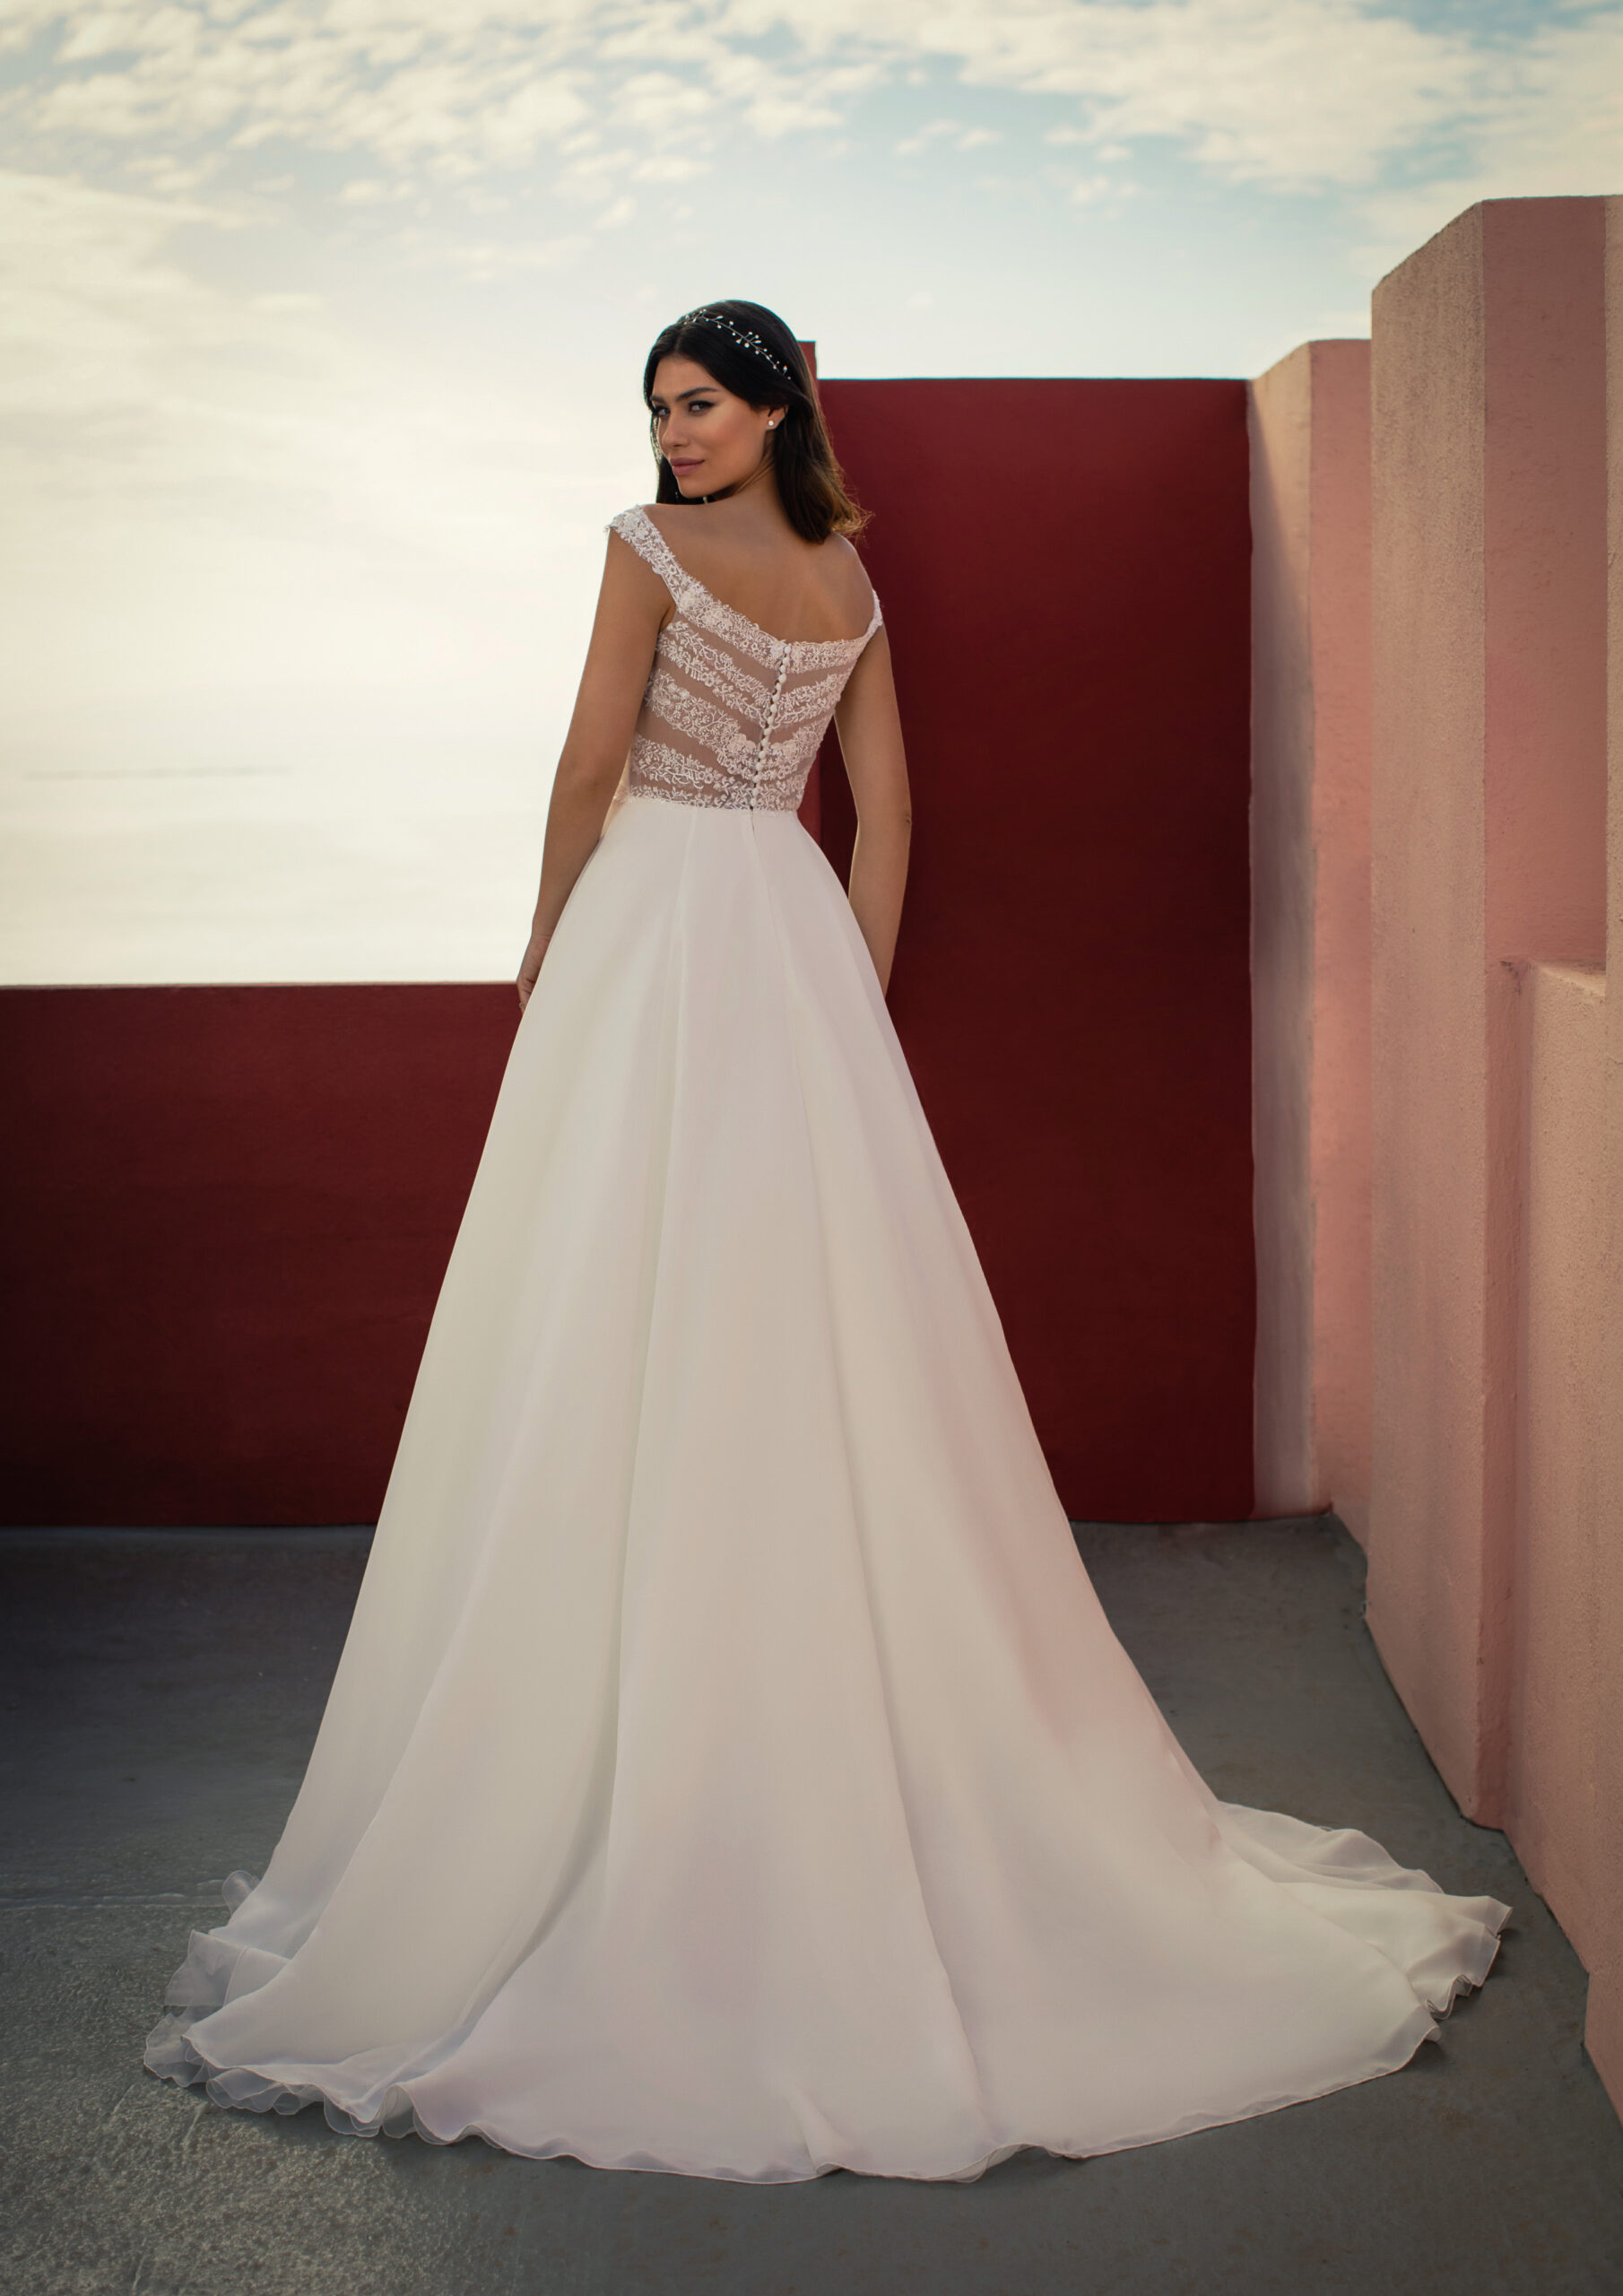 Brautkleid PARSIMMON 2021 Kollektion